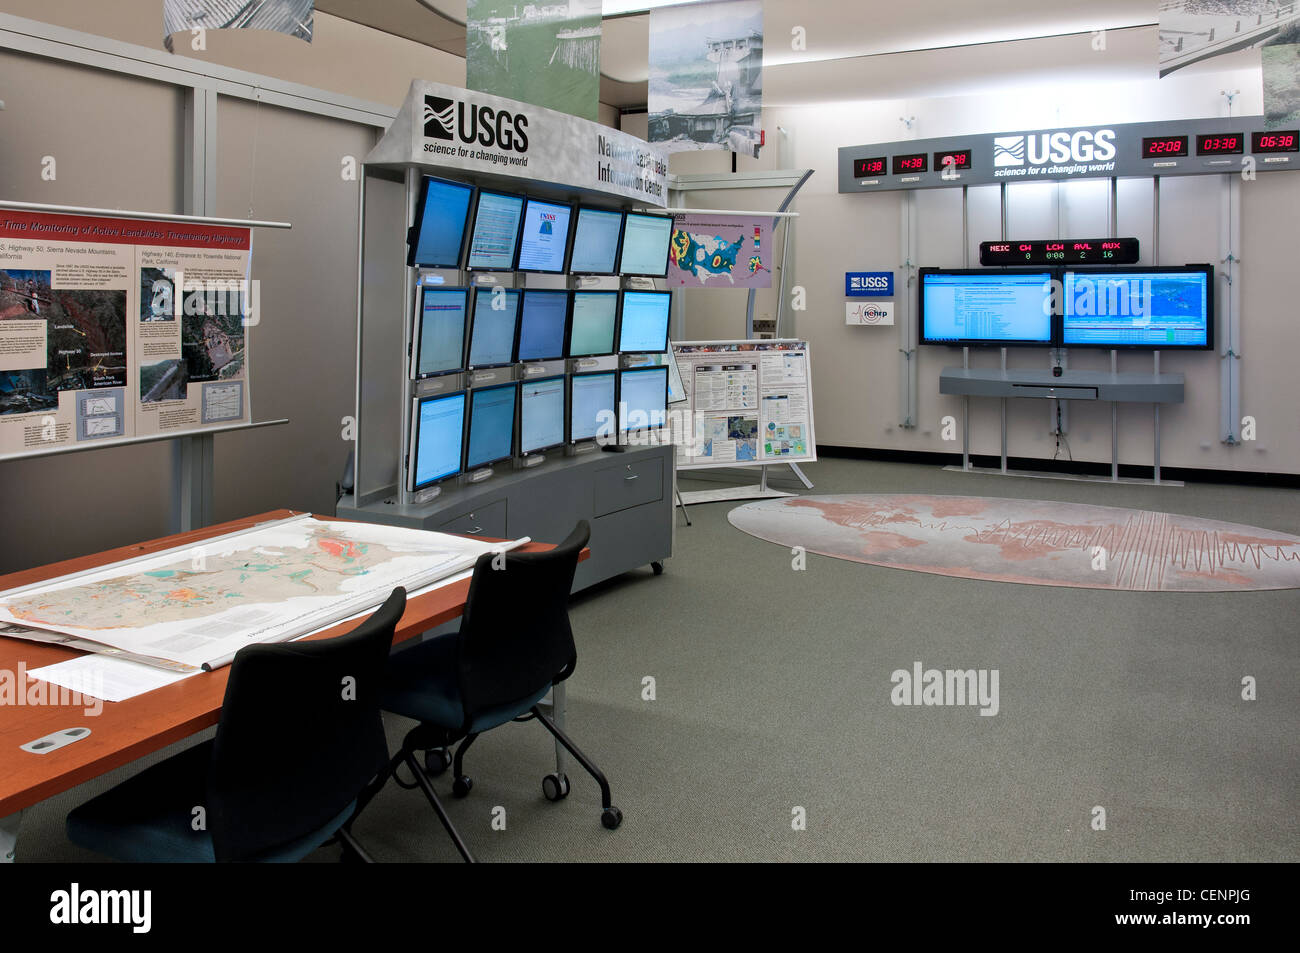 Inside the National Earthquake Information Center, United States Geological Survey (USGS), Golden, Colorado. - Stock Image